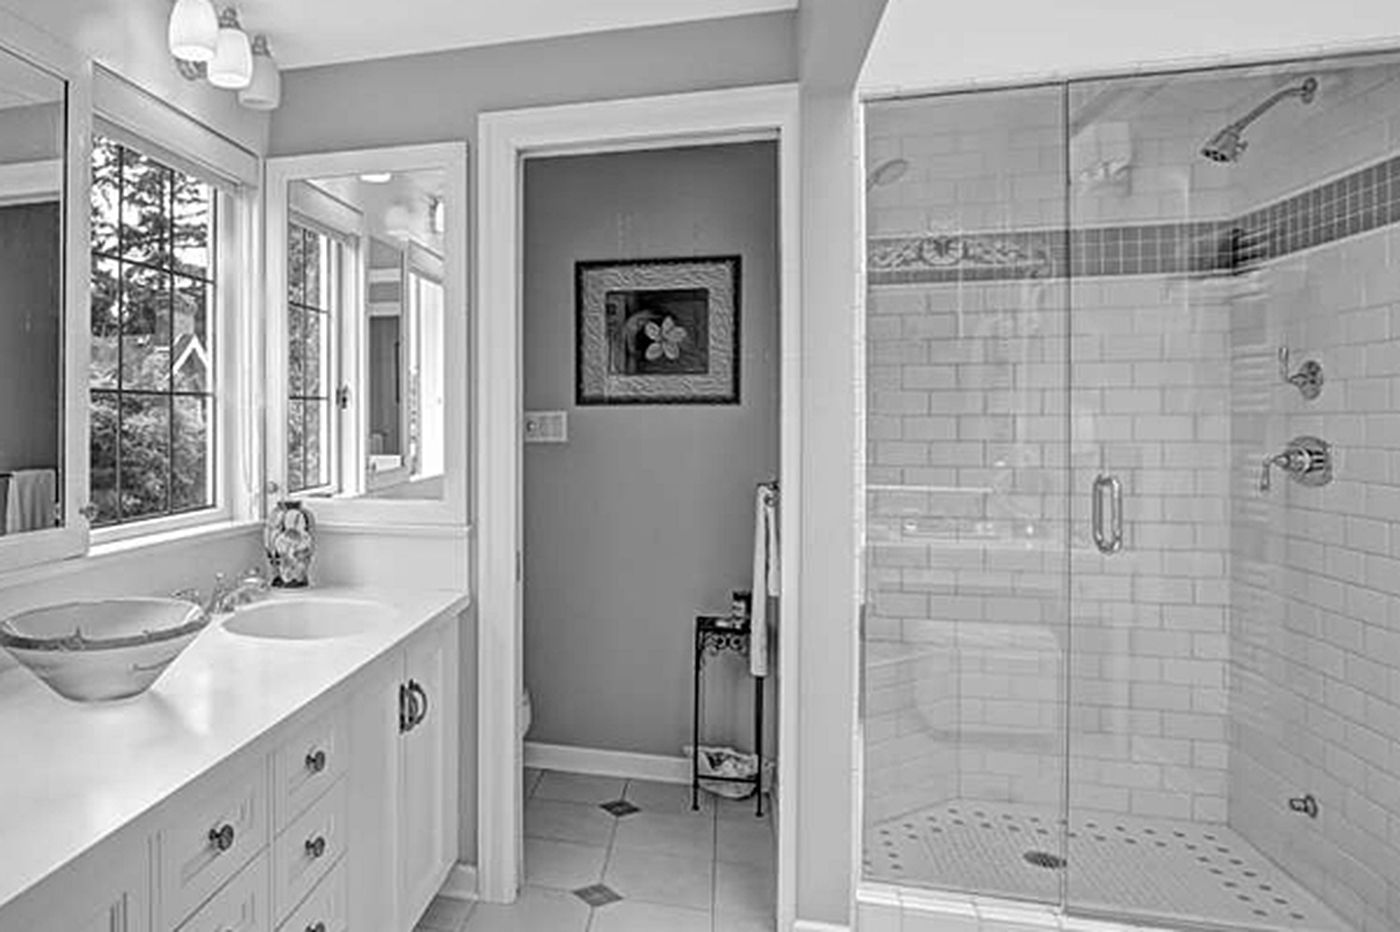 Ask Jennifer: Premade shower units - yes or no?